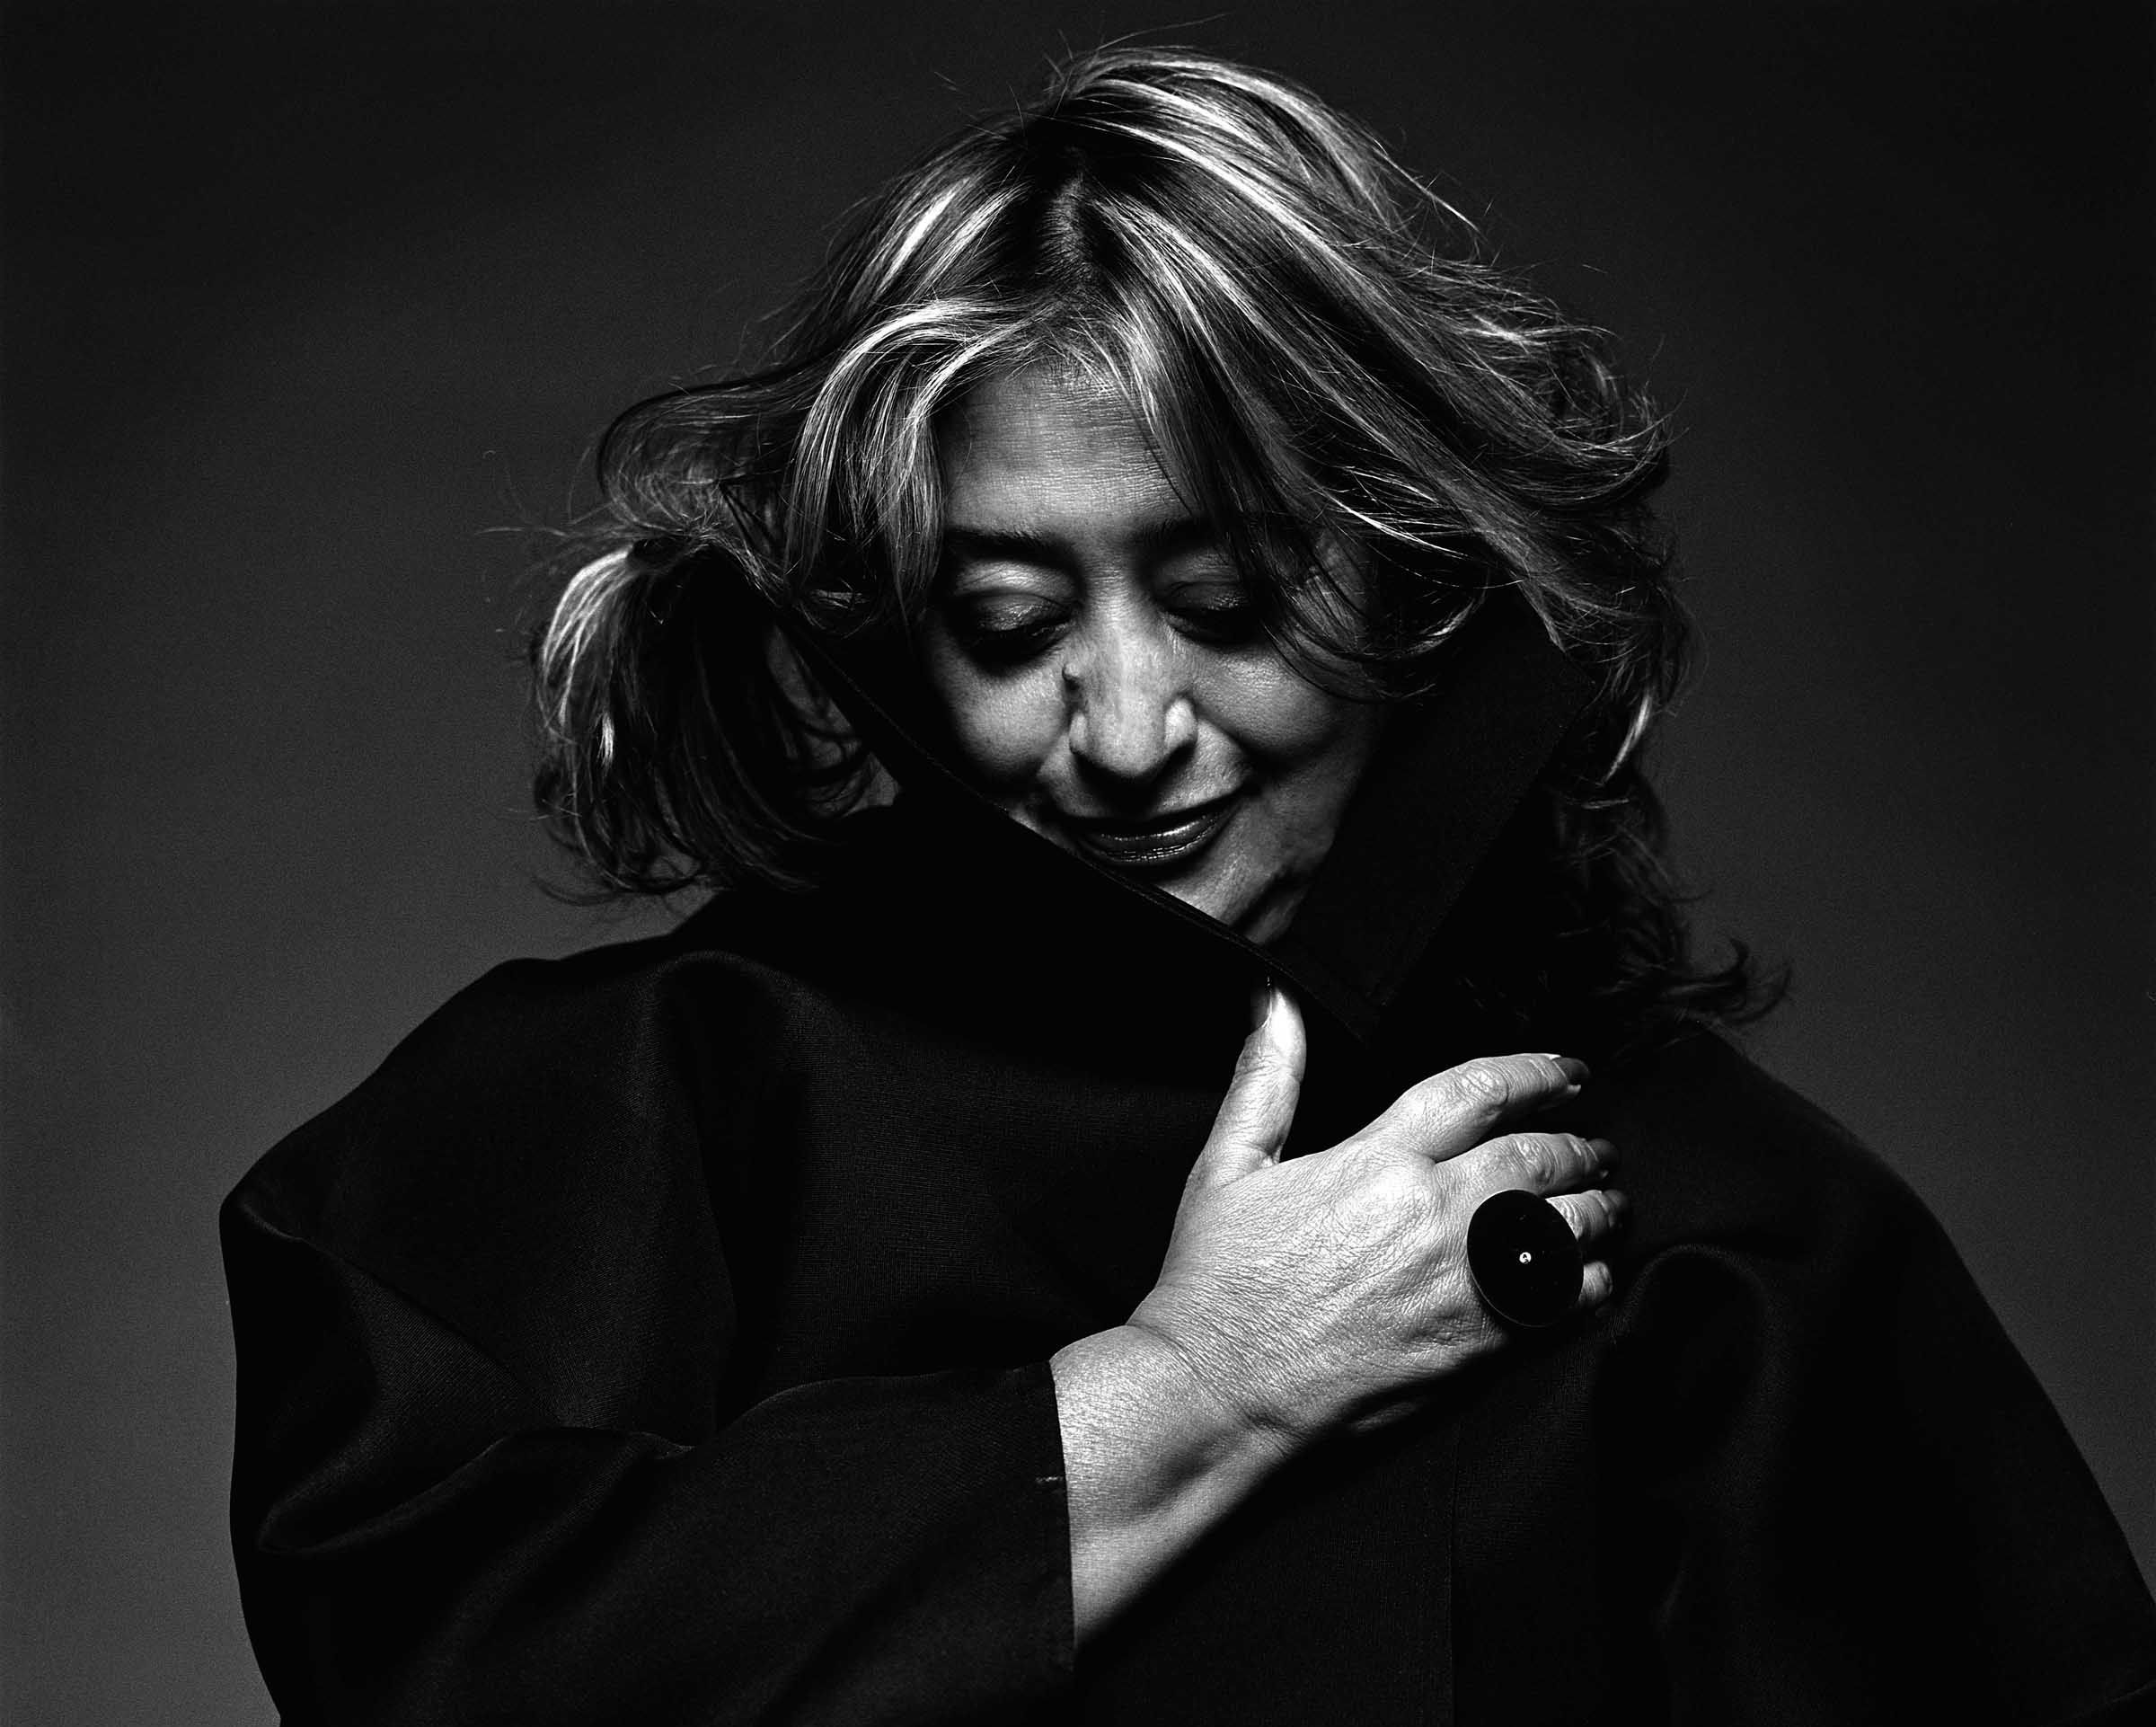 """First women to win the Pritzer Prize, Zaha Hadid is recognized worldwide by her distinctive and innovative architecture. Born in Iraq, the London based architectural designer creates powerful buildings easily recognizable by their fluid forms."" Zaha Hadid Learn More About Zaha Hadid zaha pic 4"